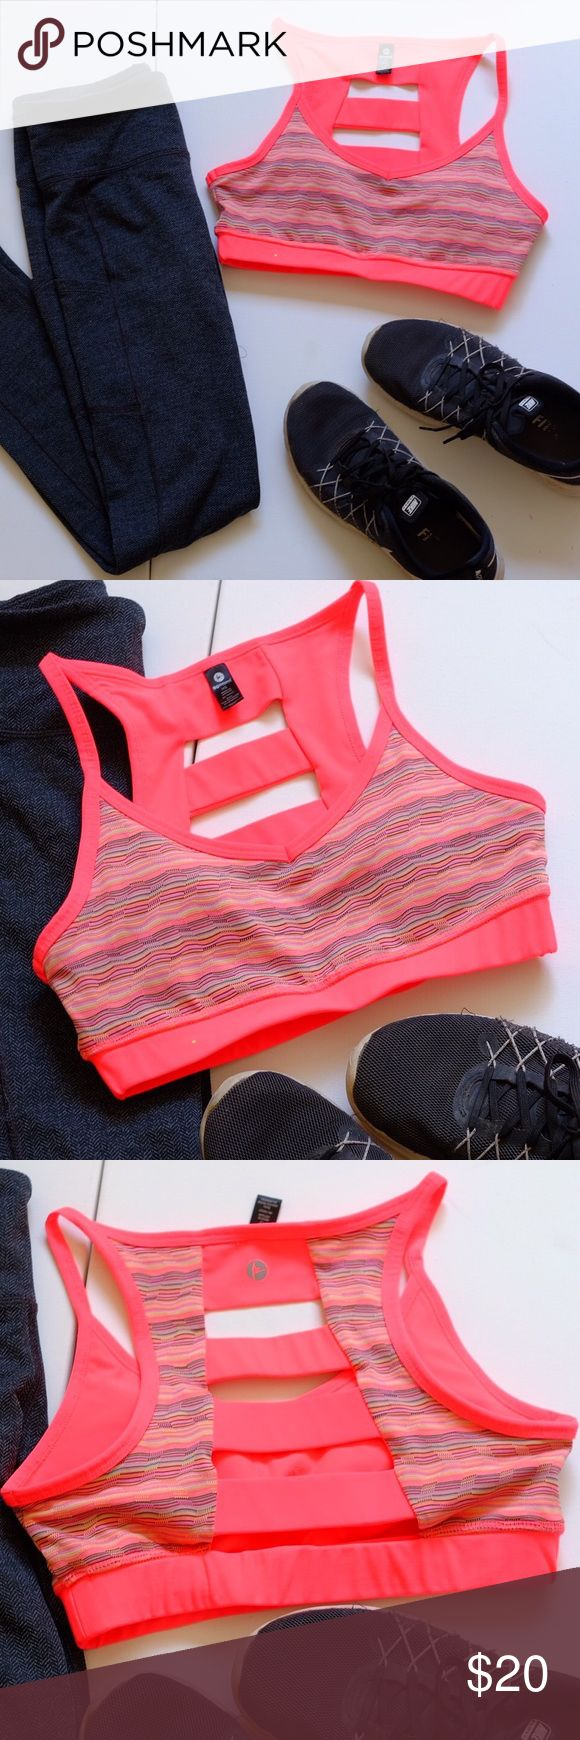 Pink colored stripe cutout back padded sports bra Padded! Cute multi colored striped sports bra! The back is just lovely! NOT LULU LEMON - tagged for exposure. Brand is 90 degrees by Reflex. XS sports bra! lululemon athletica Intimates & Sleepwear Bras